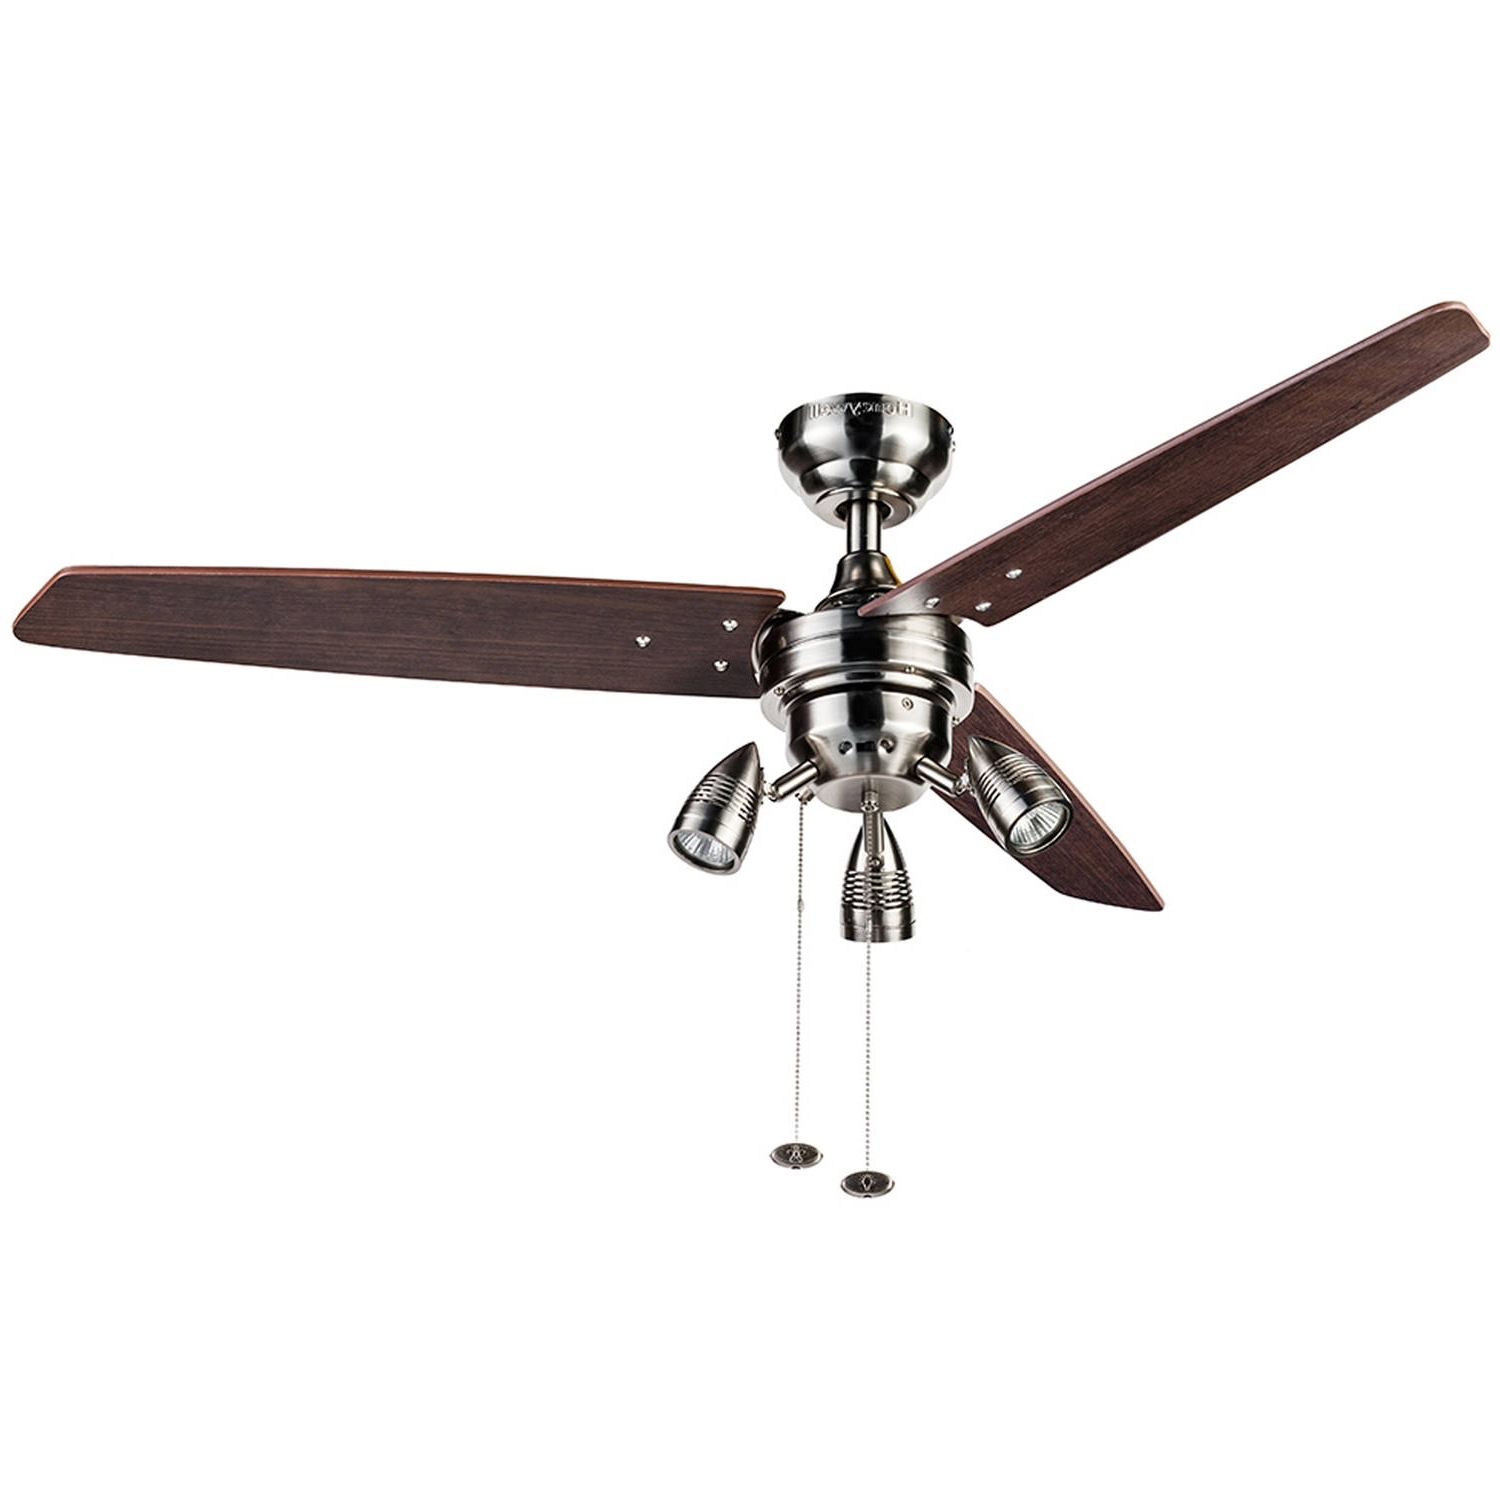 Latest Wicker Outdoor Ceiling Fans With Lights Inside Ceiling: Marvellous Wicker Ceiling Fans Design Coastal Style Ceiling (View 9 of 20)